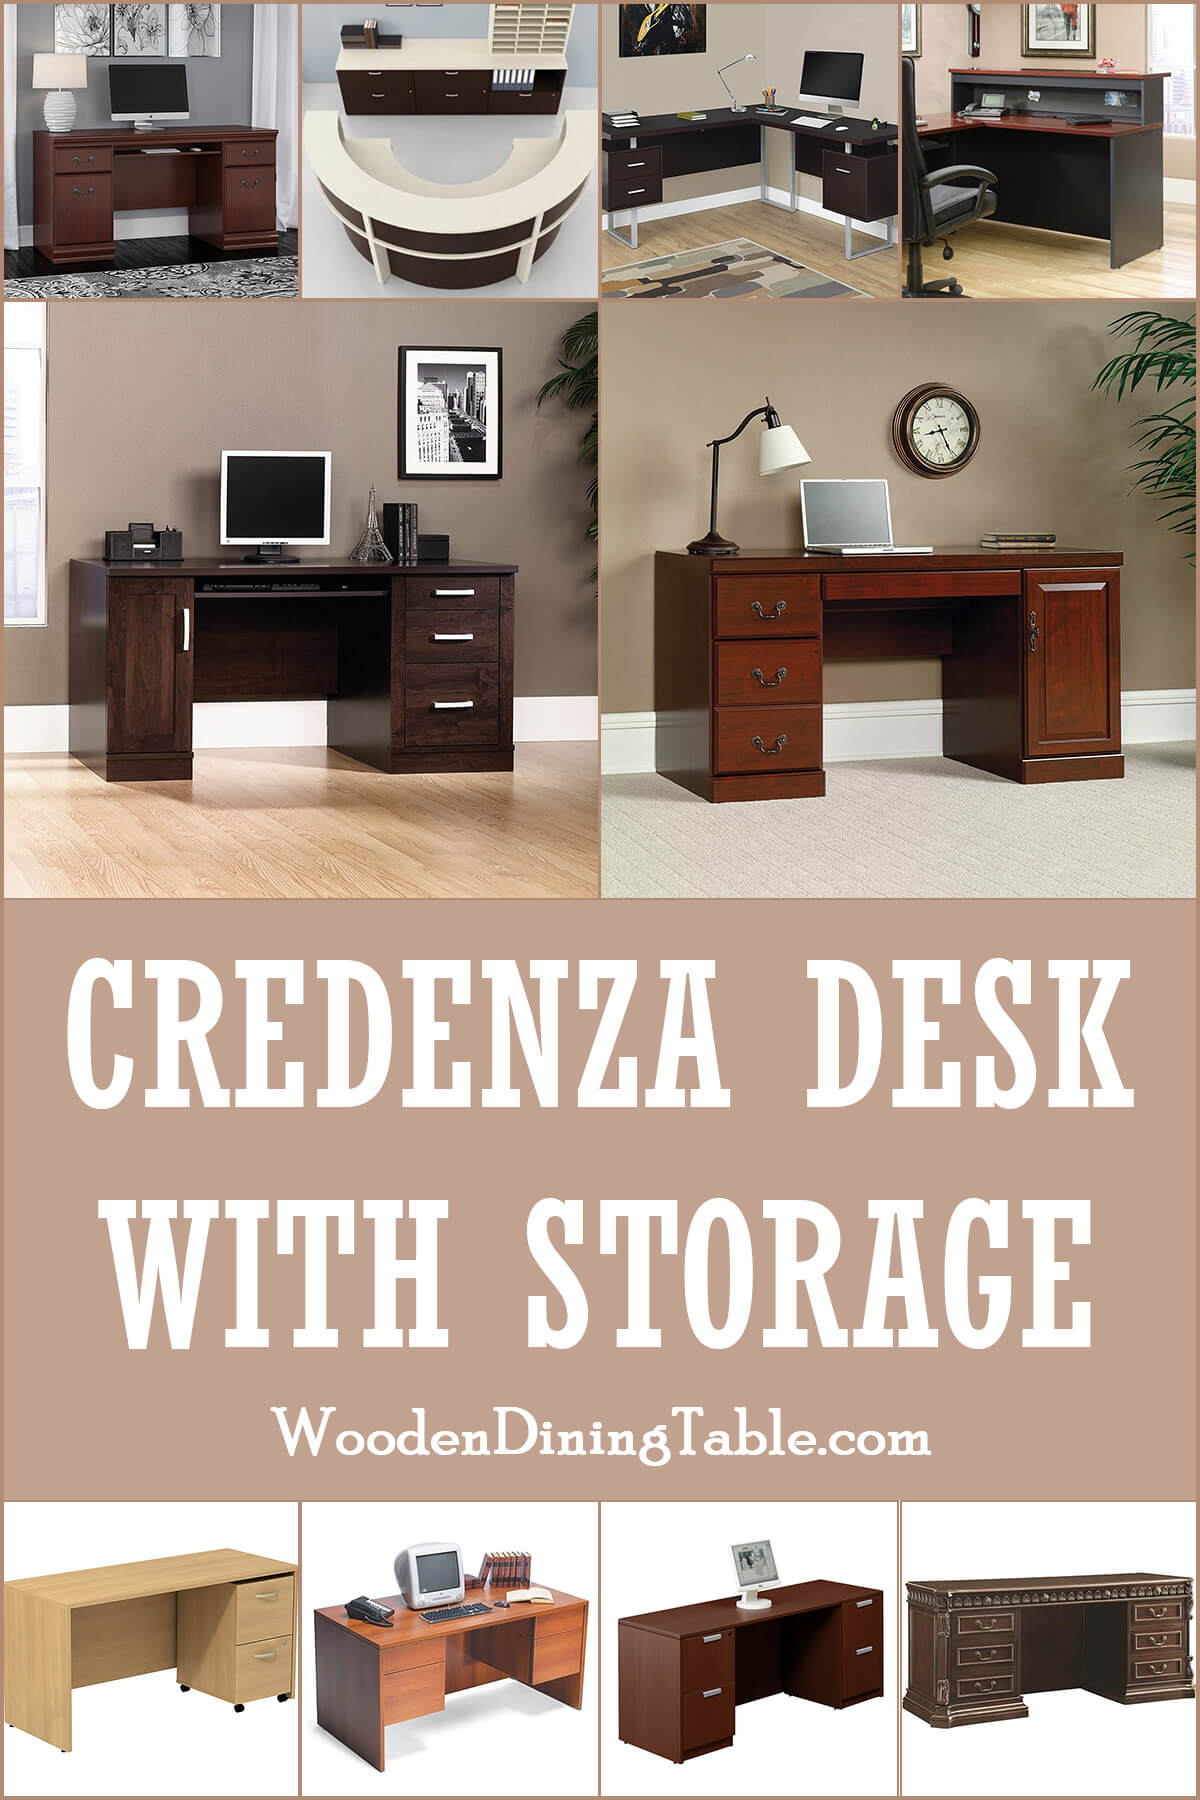 CREDENZA DESK WITH STORAGE